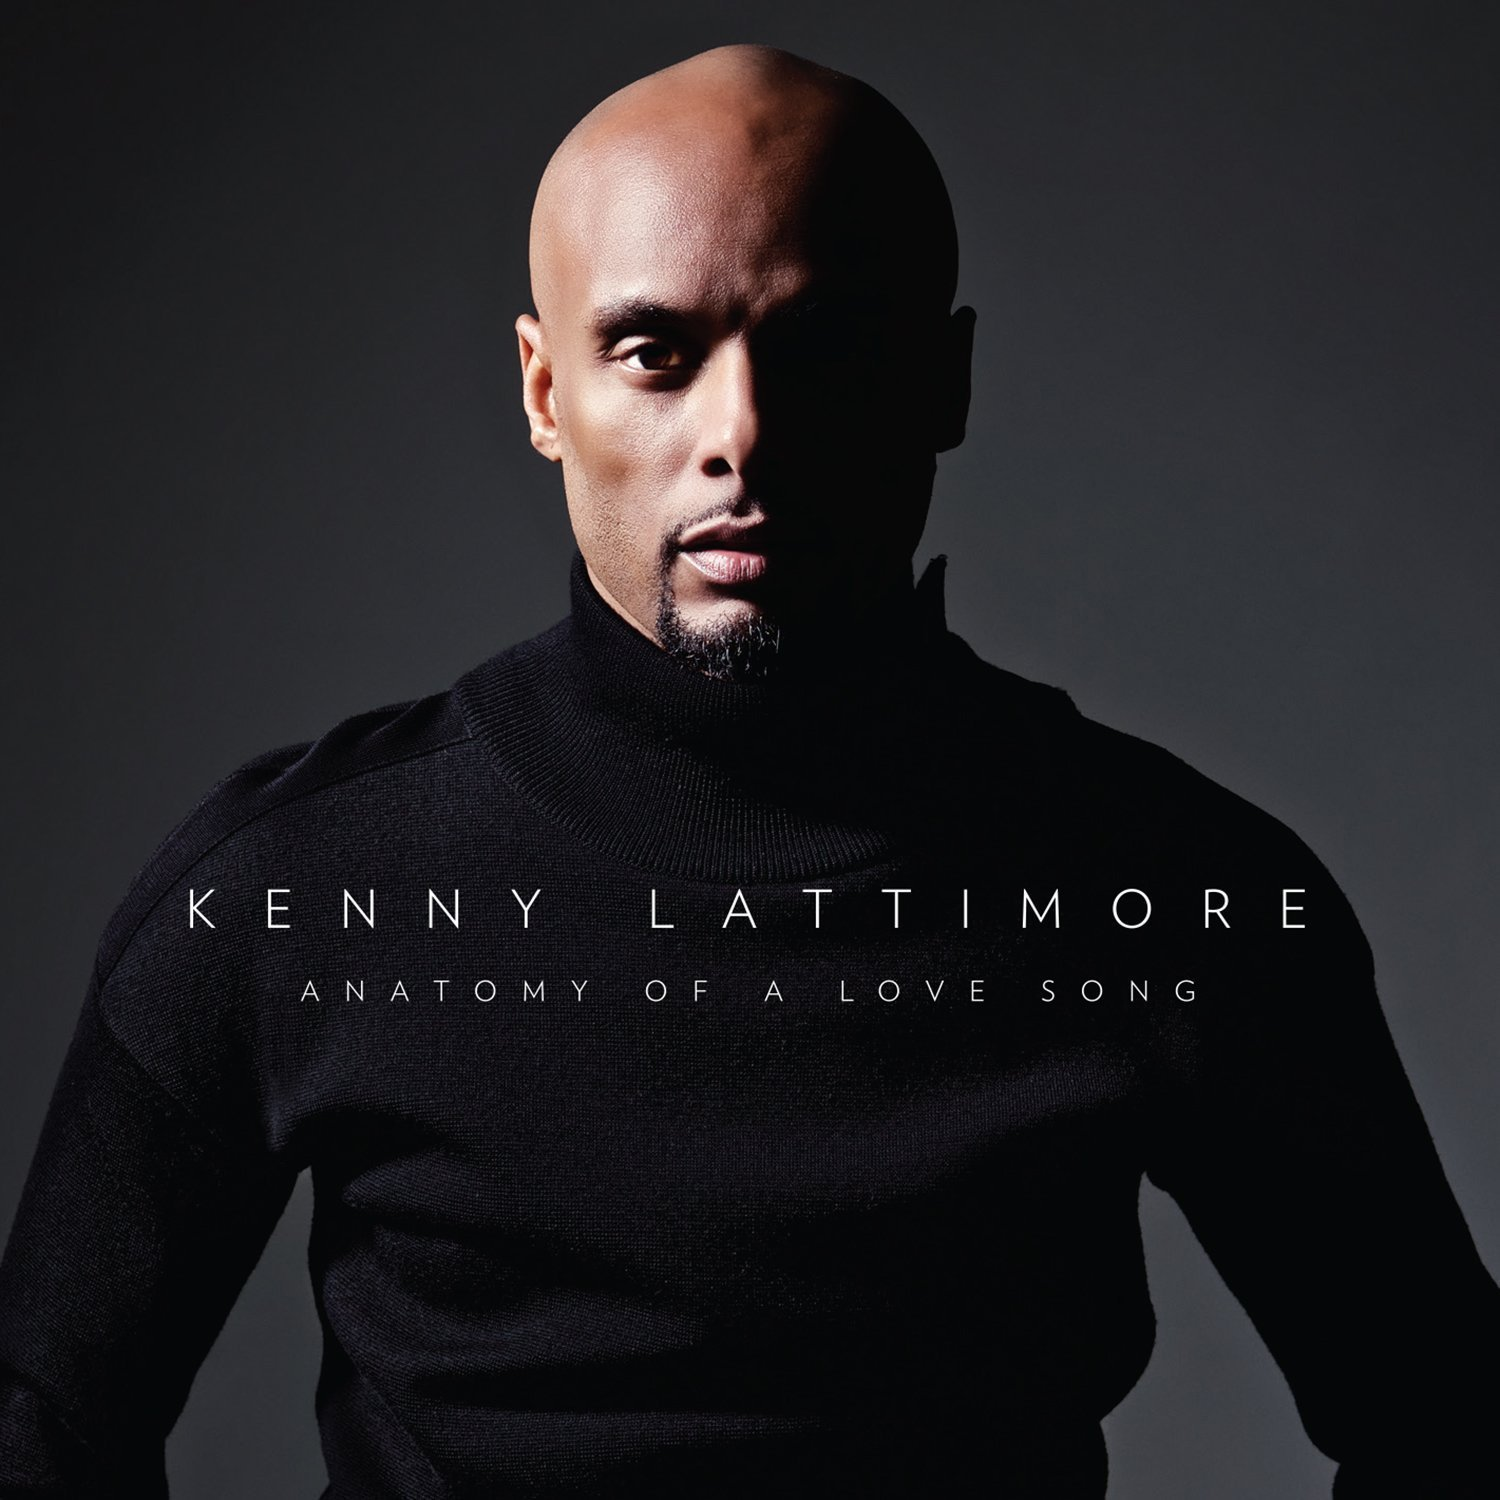 Buy Kenny Lattimore's CD Anatomy Of A Love Song now!